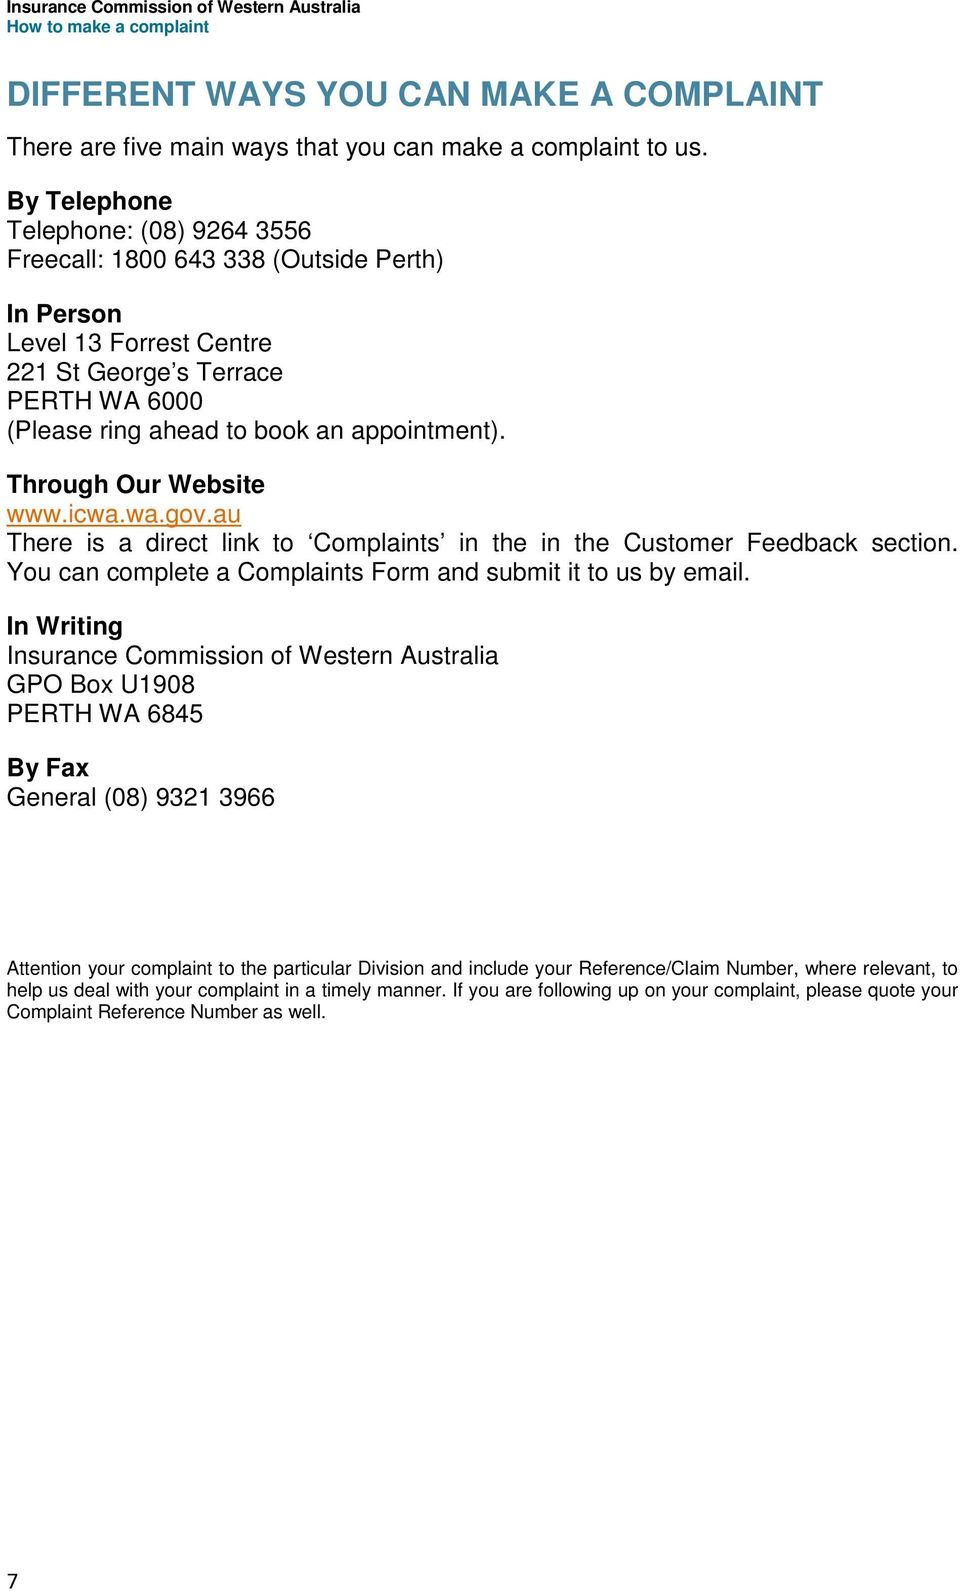 Through Our Website www.icwa.wa.gov.au There is a direct link to Complaints in the in the Customer Feedback section. You can complete a Complaints Form and submit it to us by email.